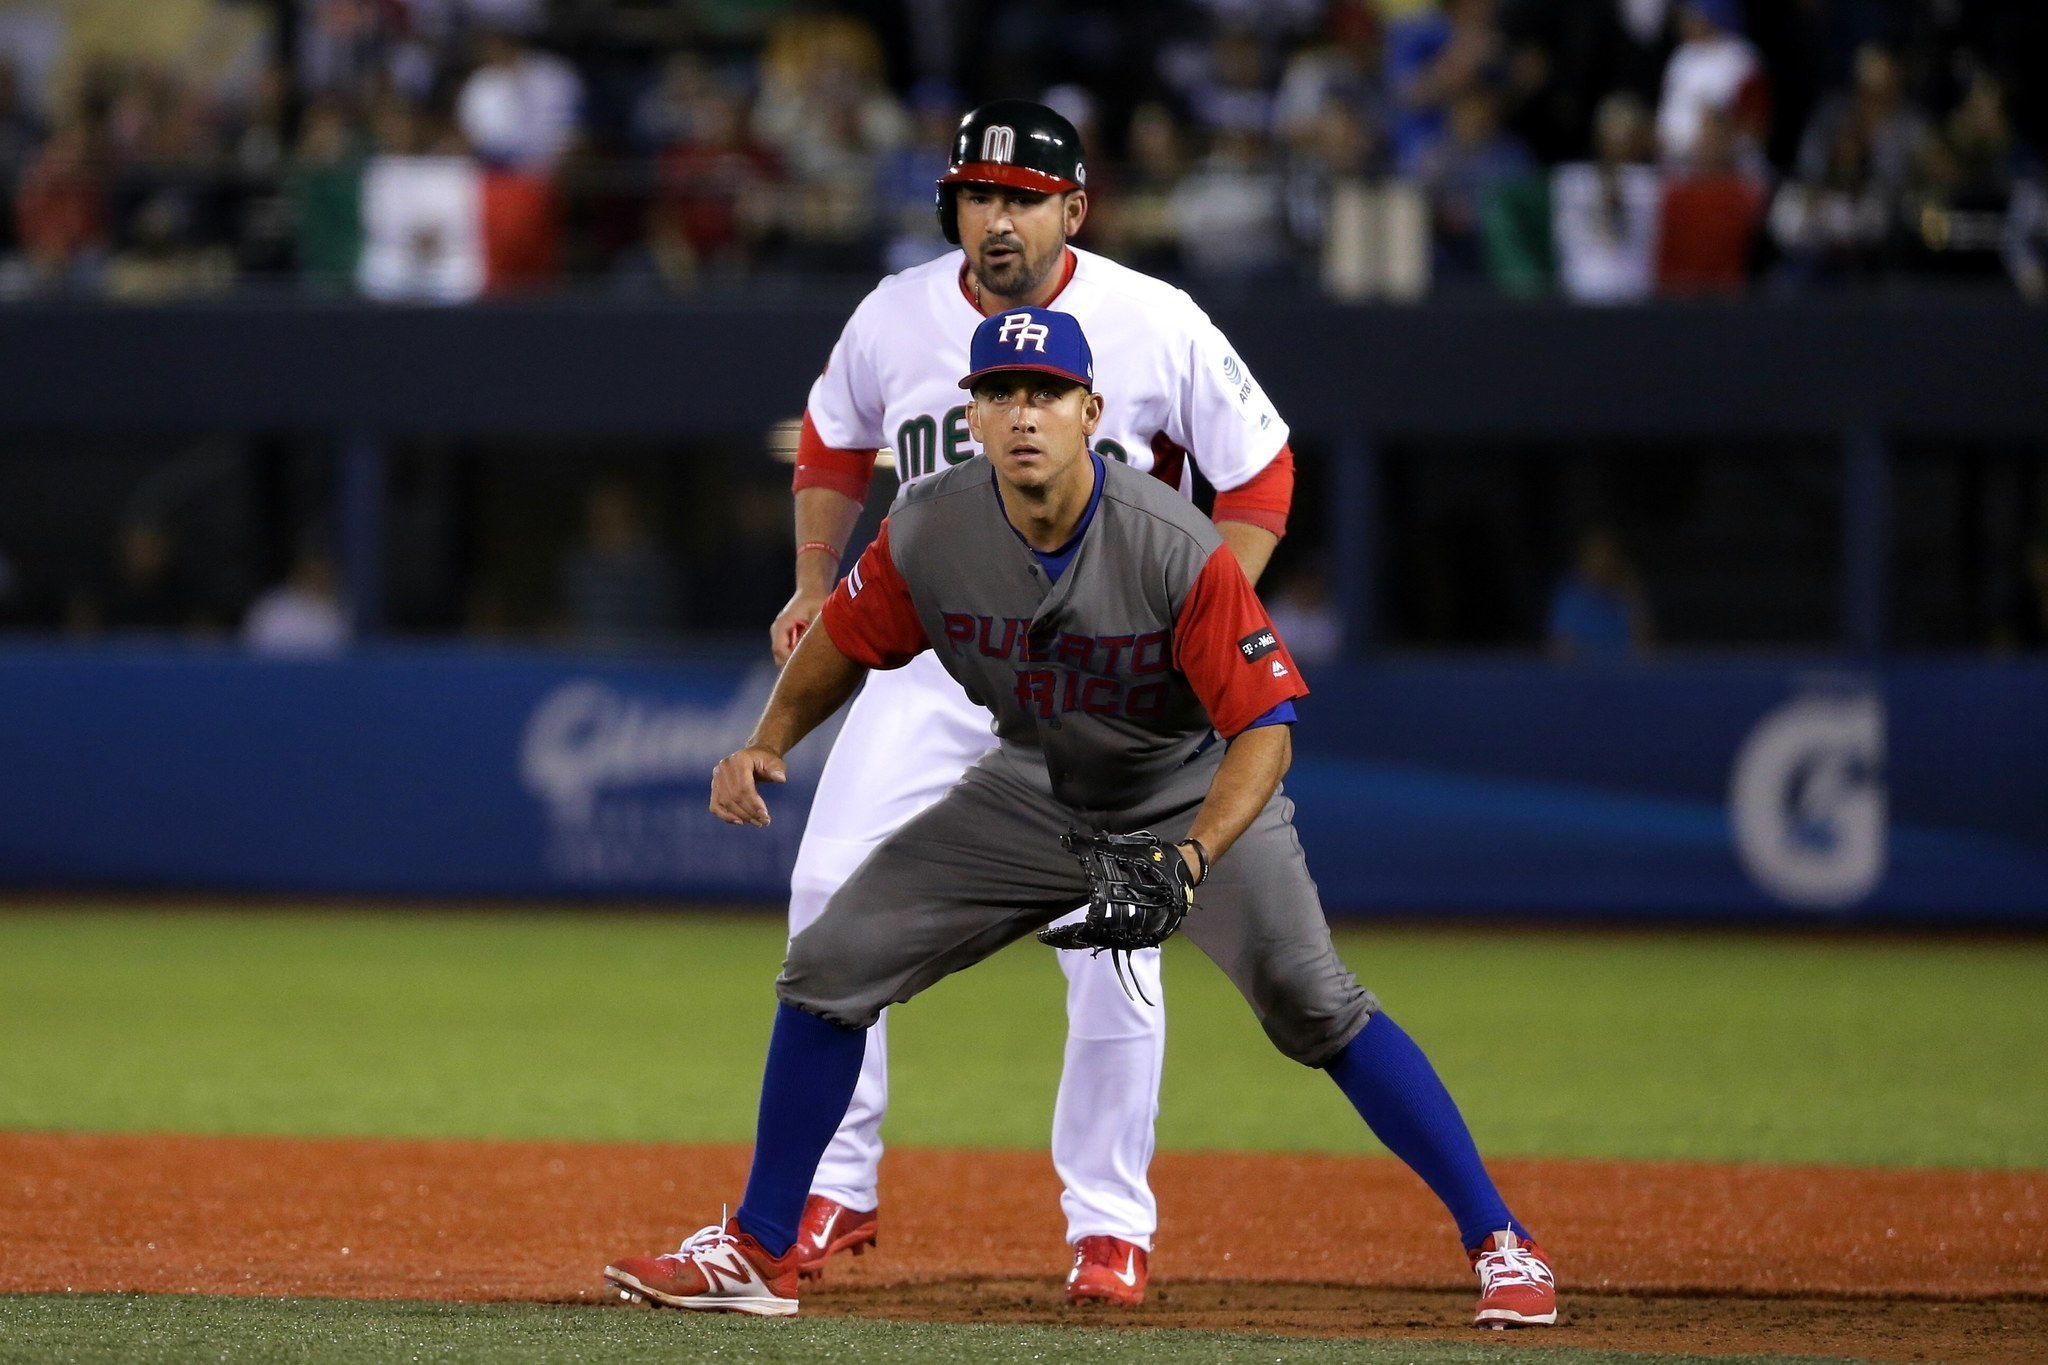 Adrian Gonzalez trashes World Baseball Classic after controversial Team Mexico exit